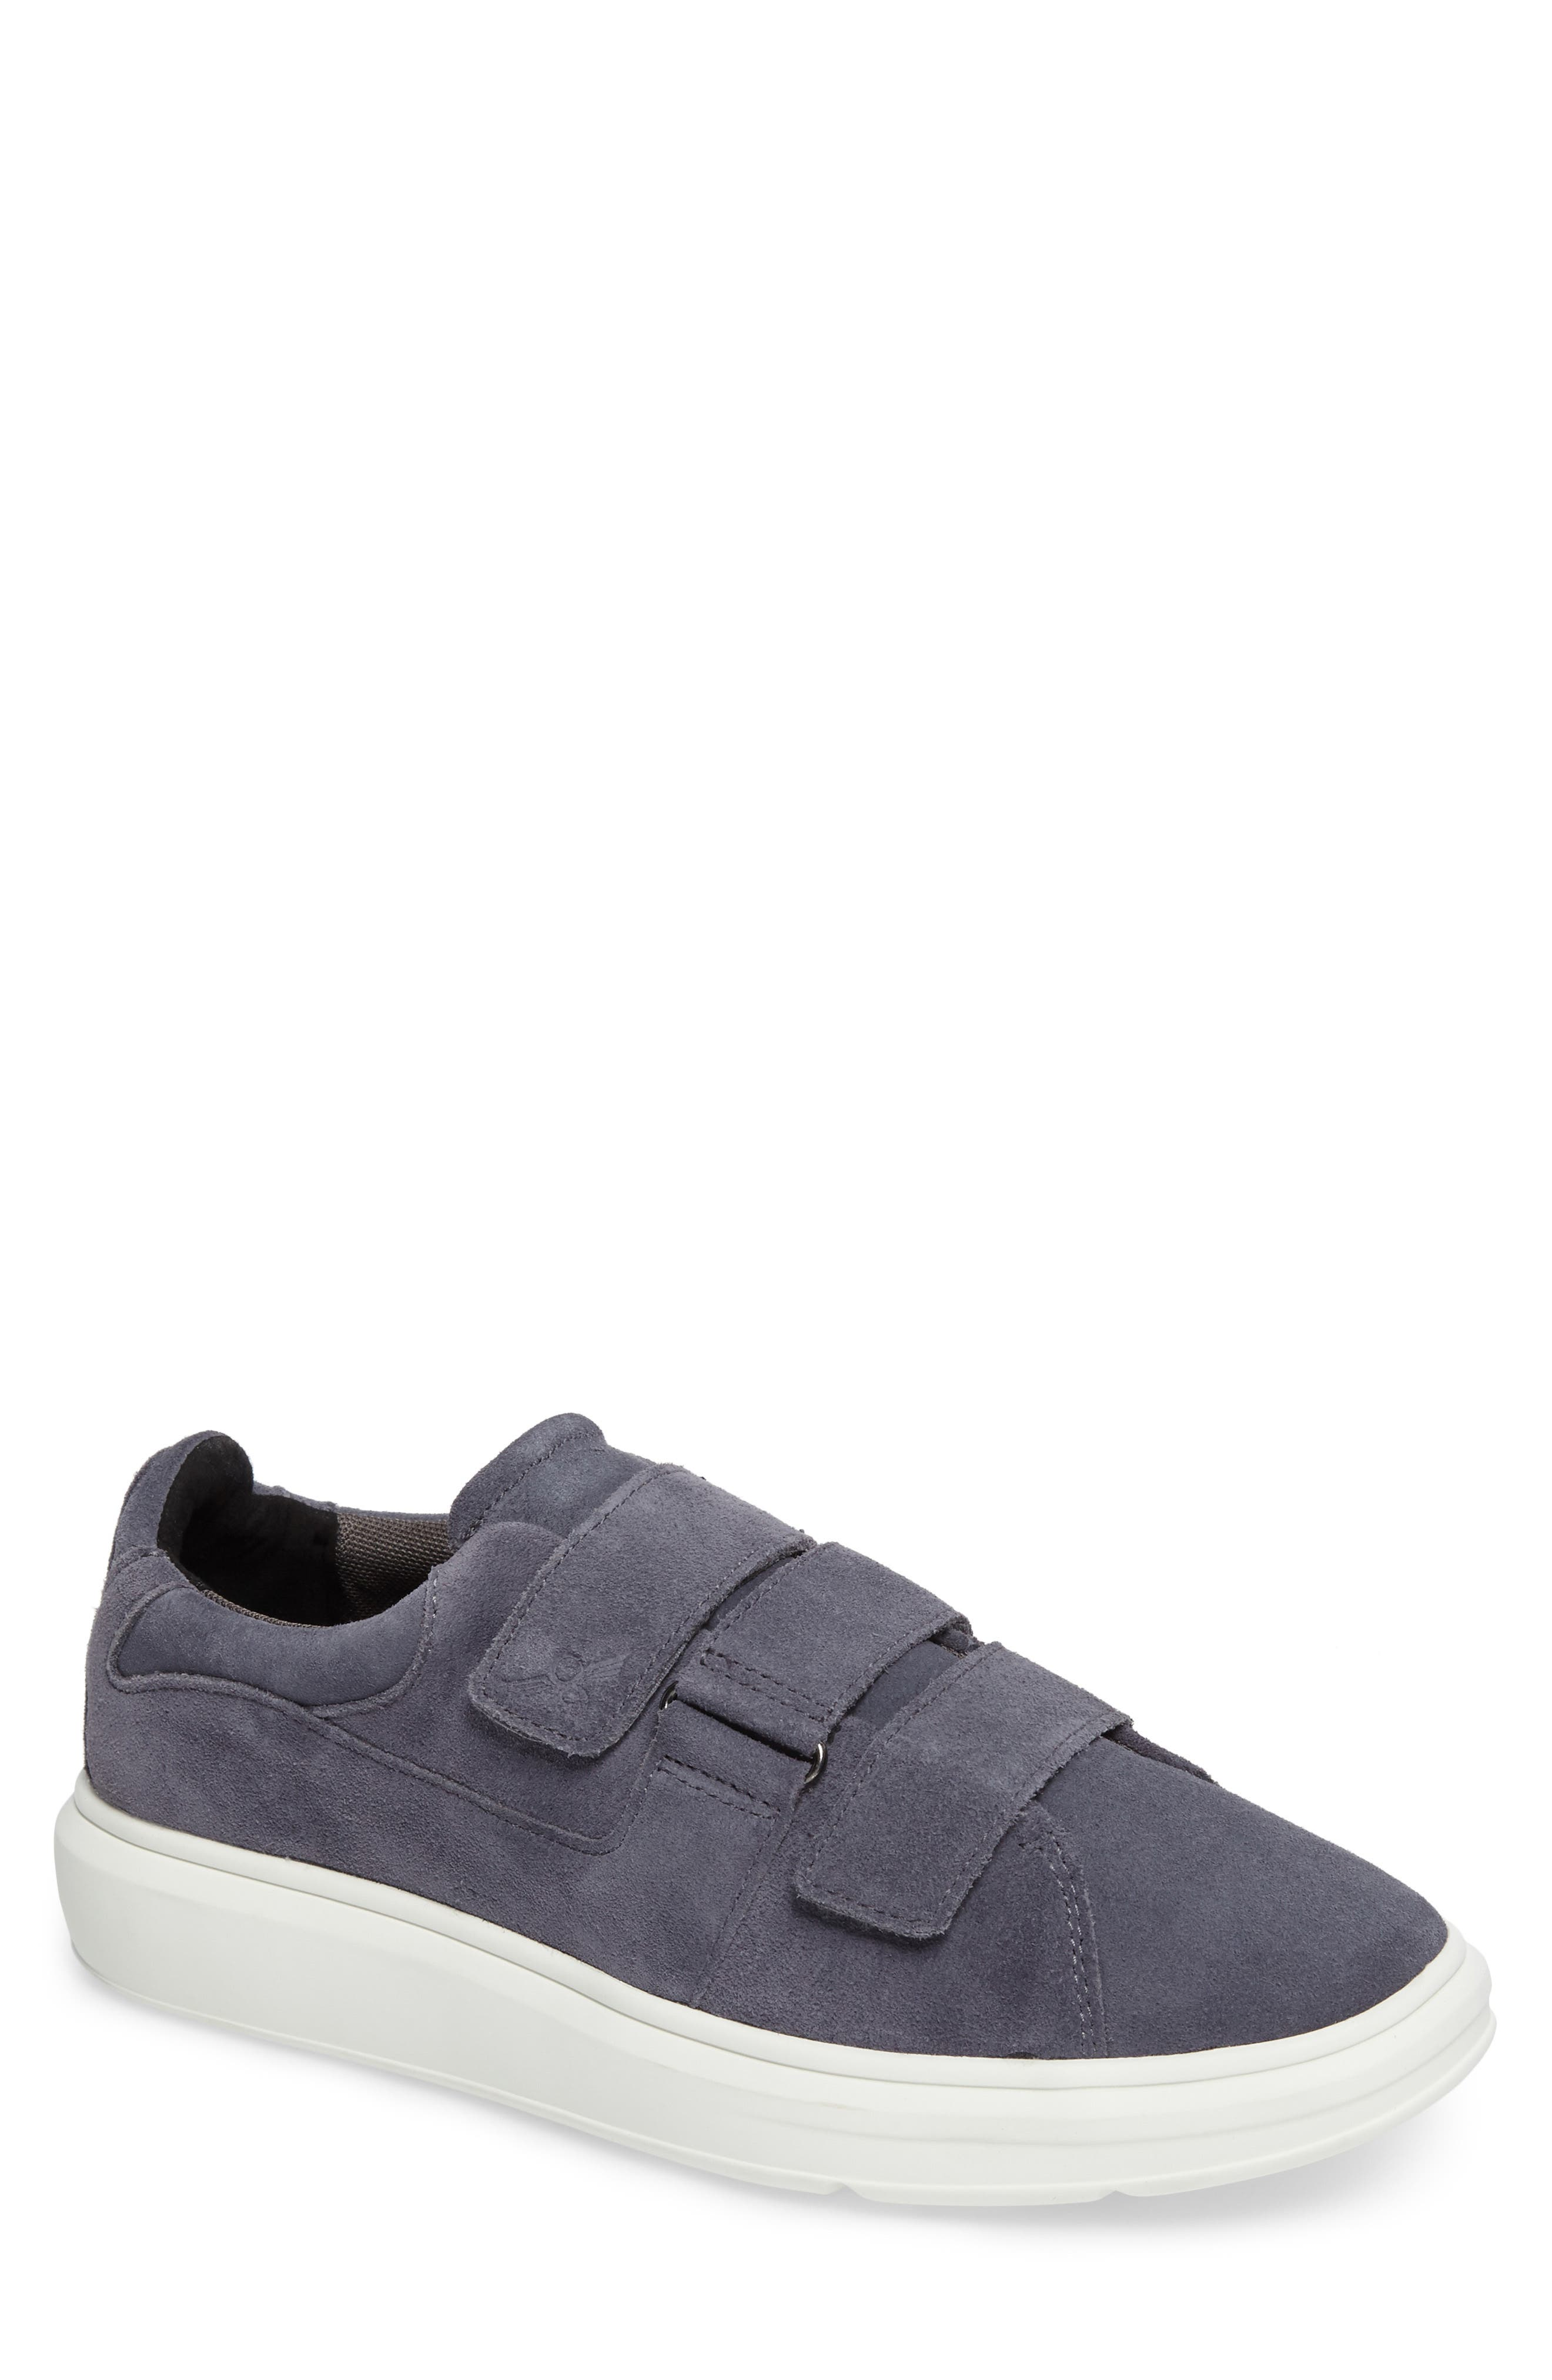 Creative Recreation Meleti Sneaker (Men)